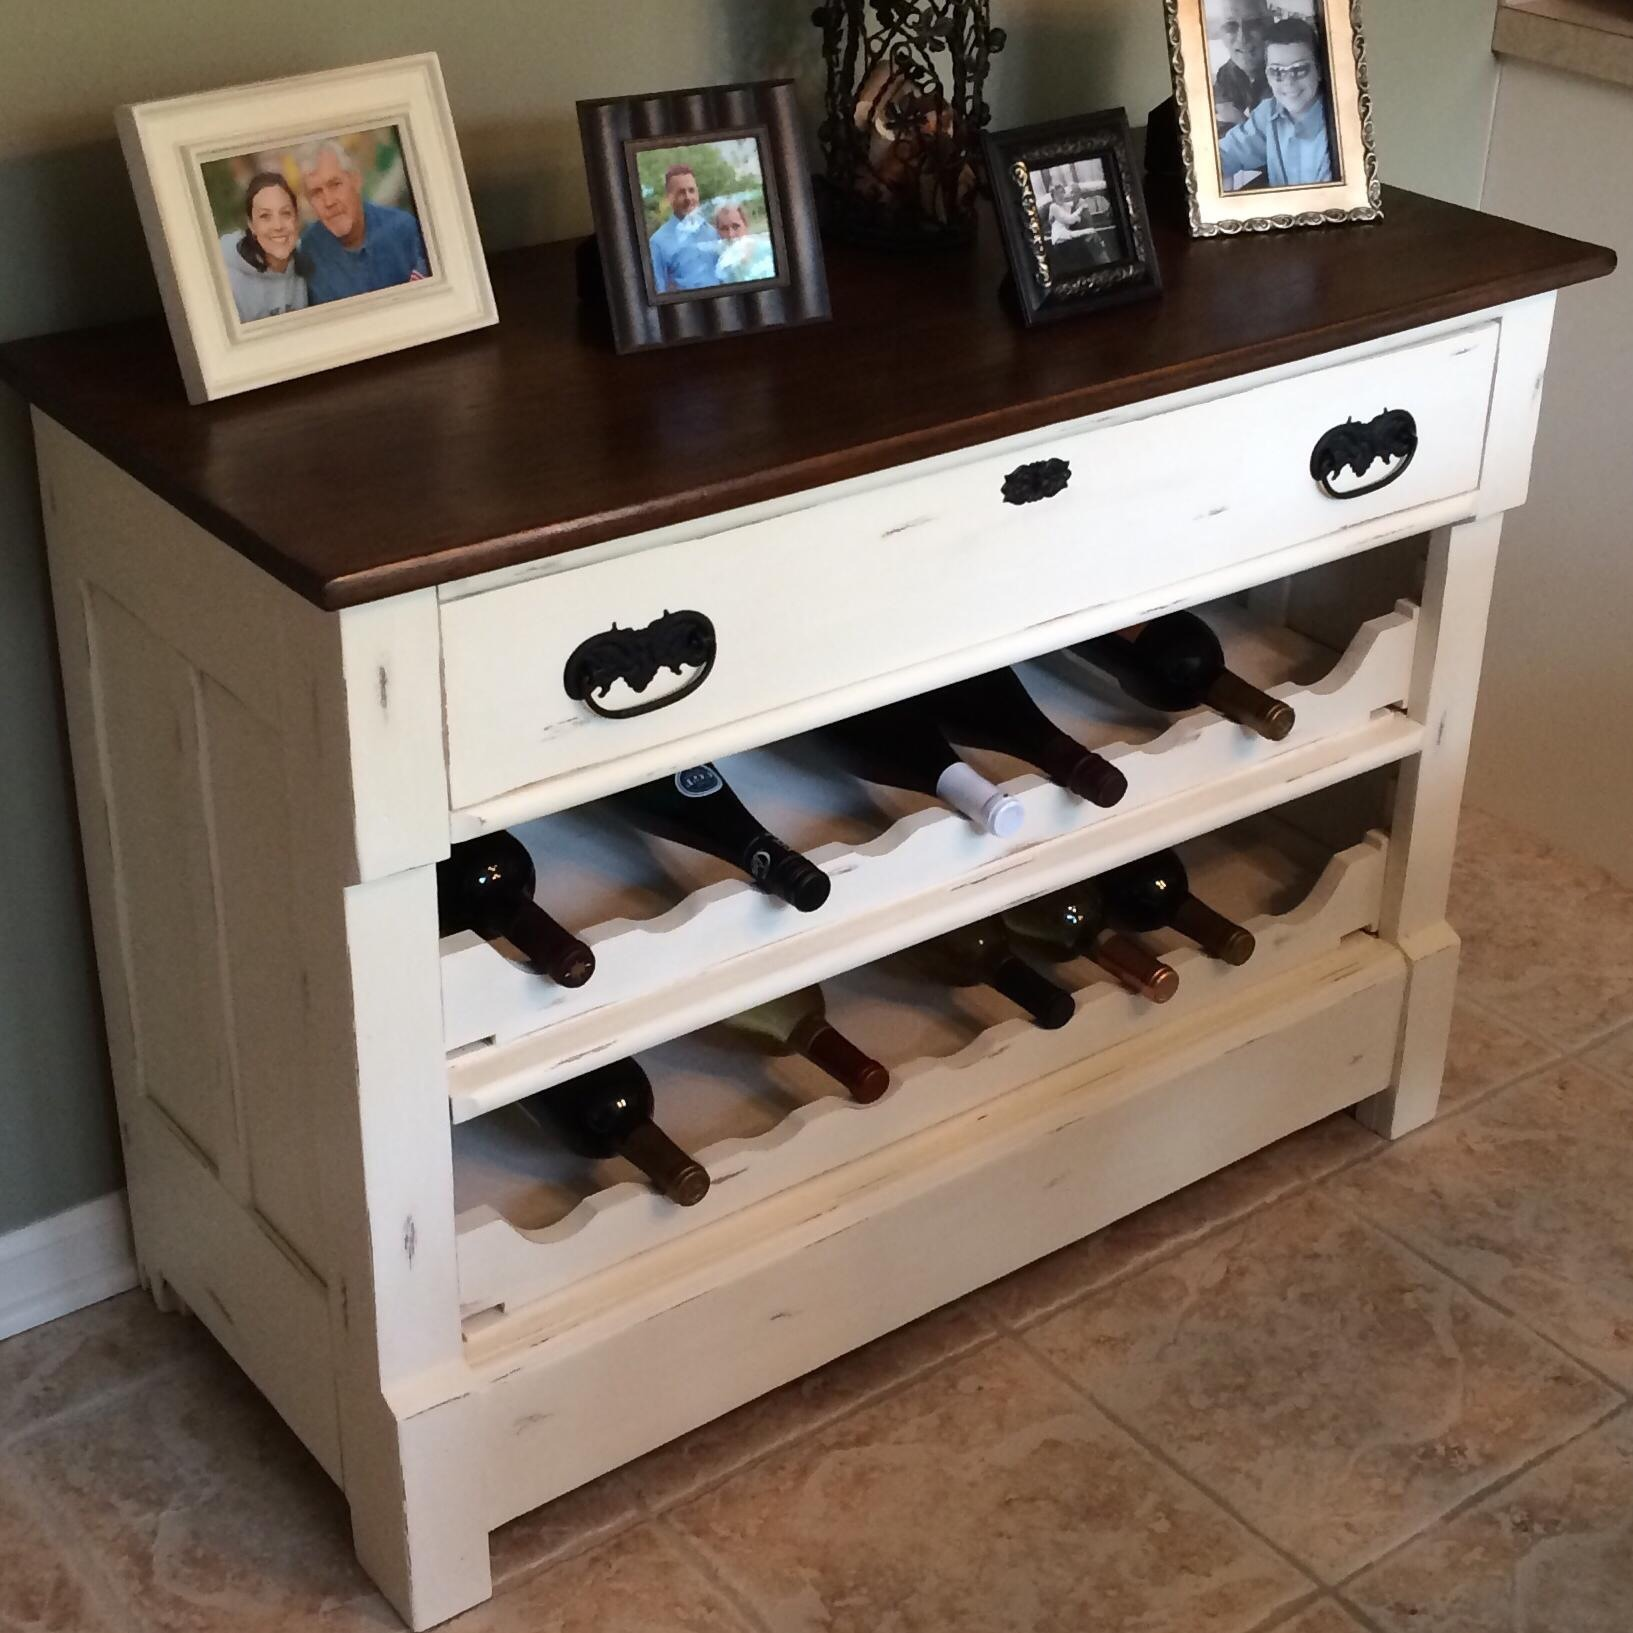 How to make dresser drawers - Turn Dresser Into A Wine Rack